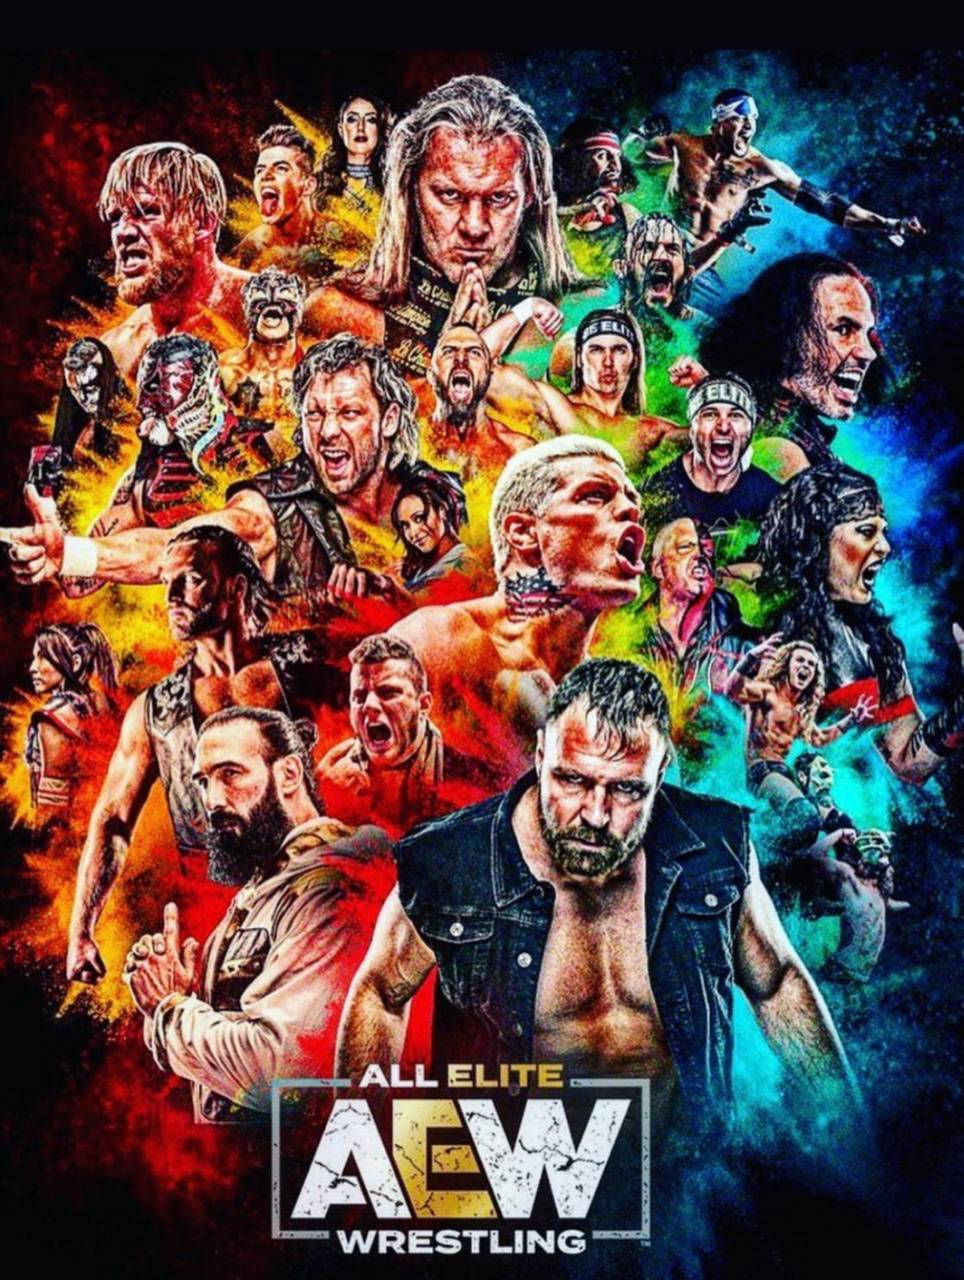 All Elite Wrestling Wallpaper By Thespawner97 23 Free On Zedge